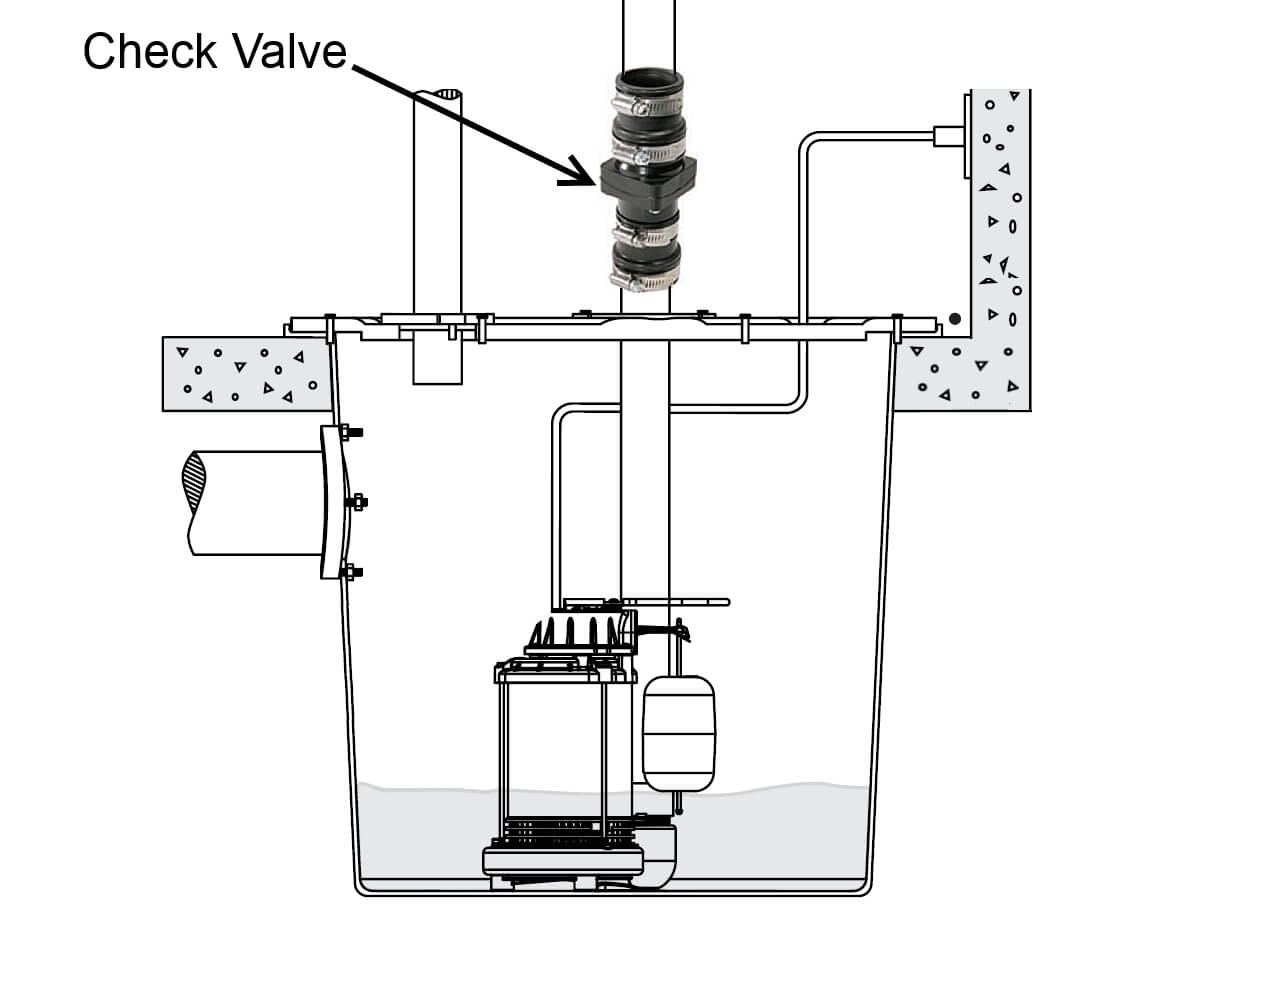 hight resolution of 2 a missing check valve